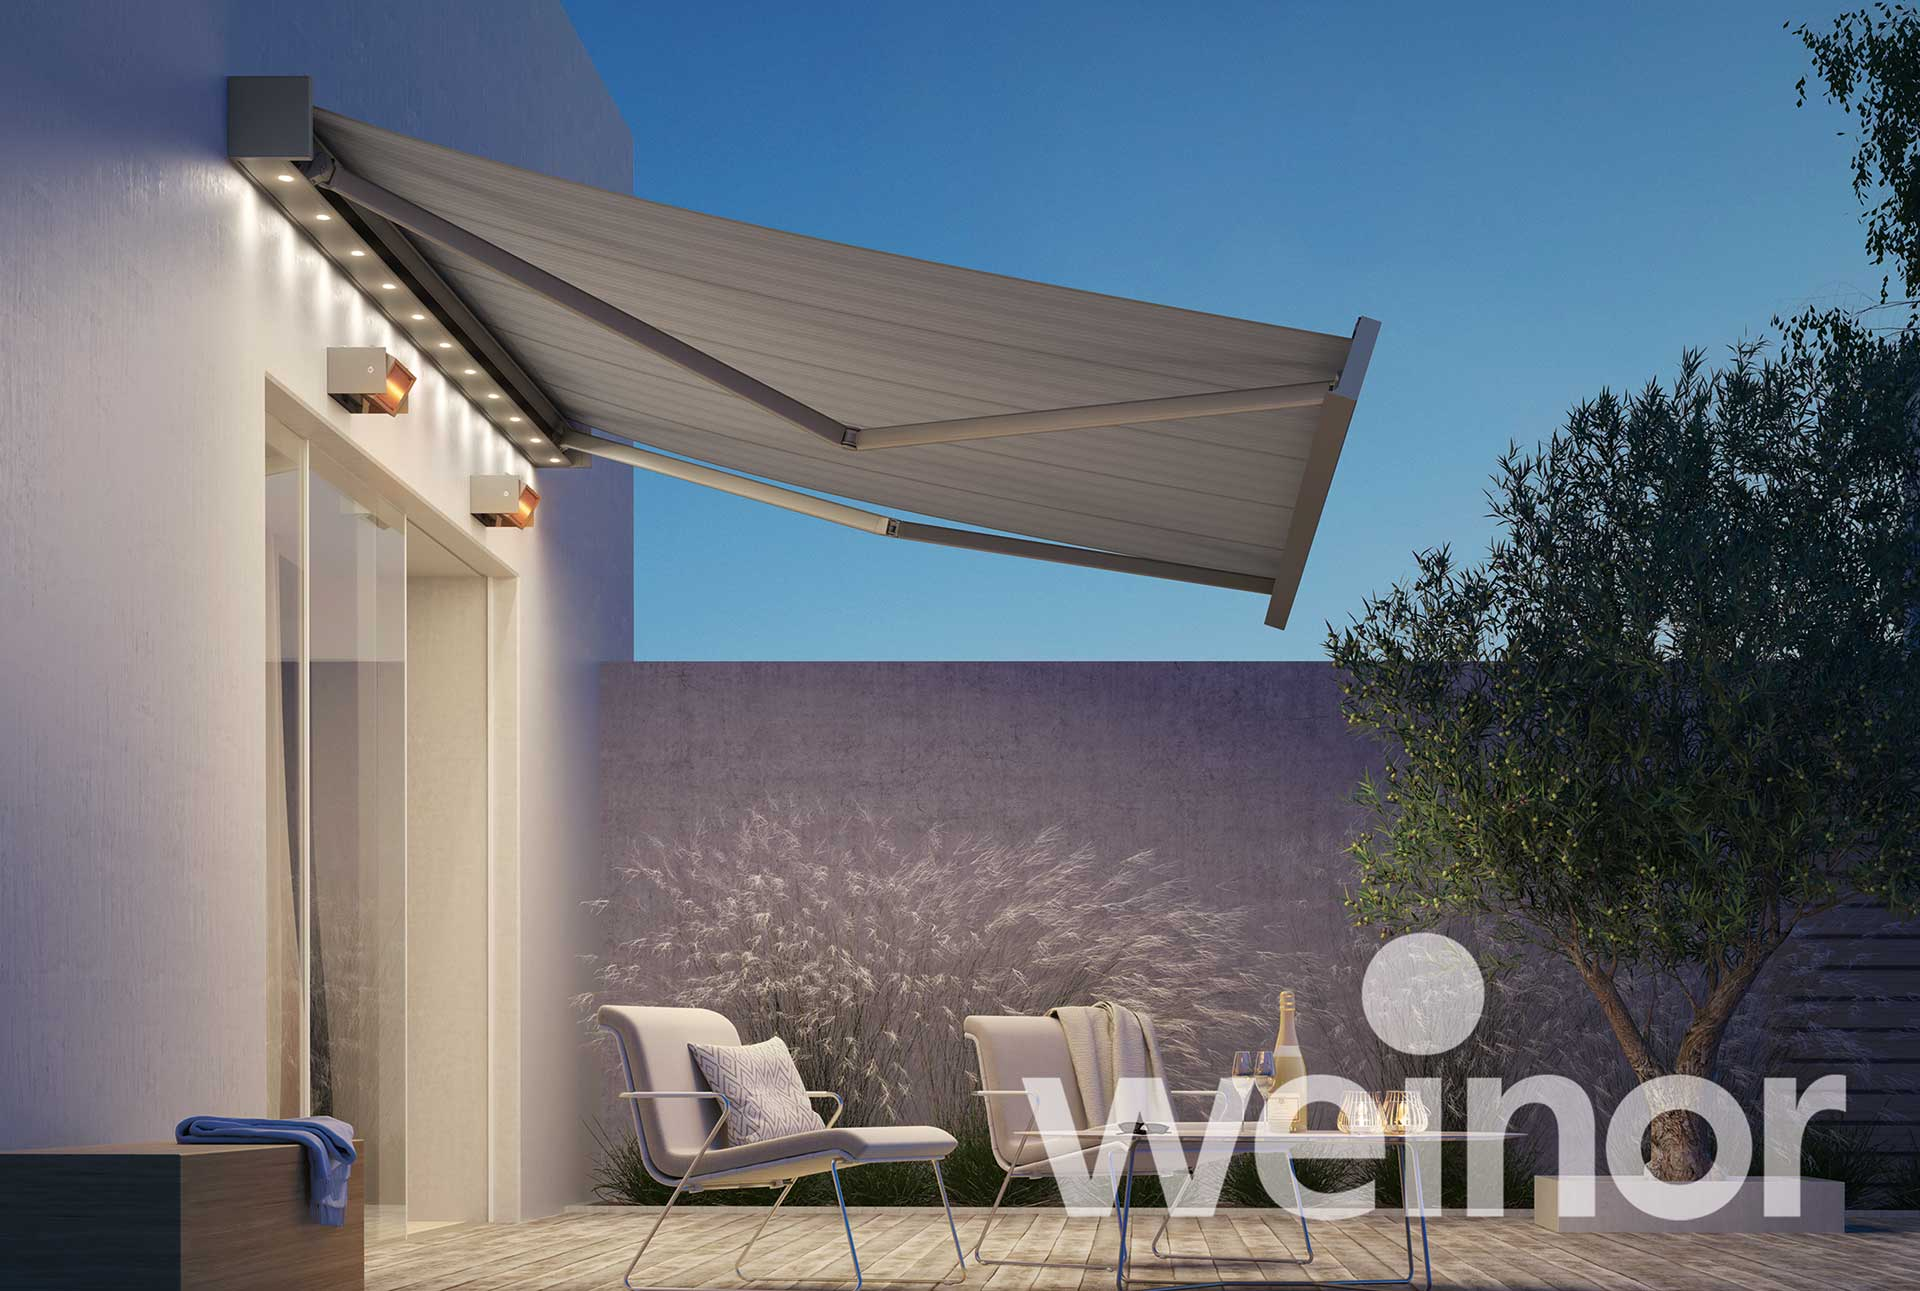 Awnings for your home or business